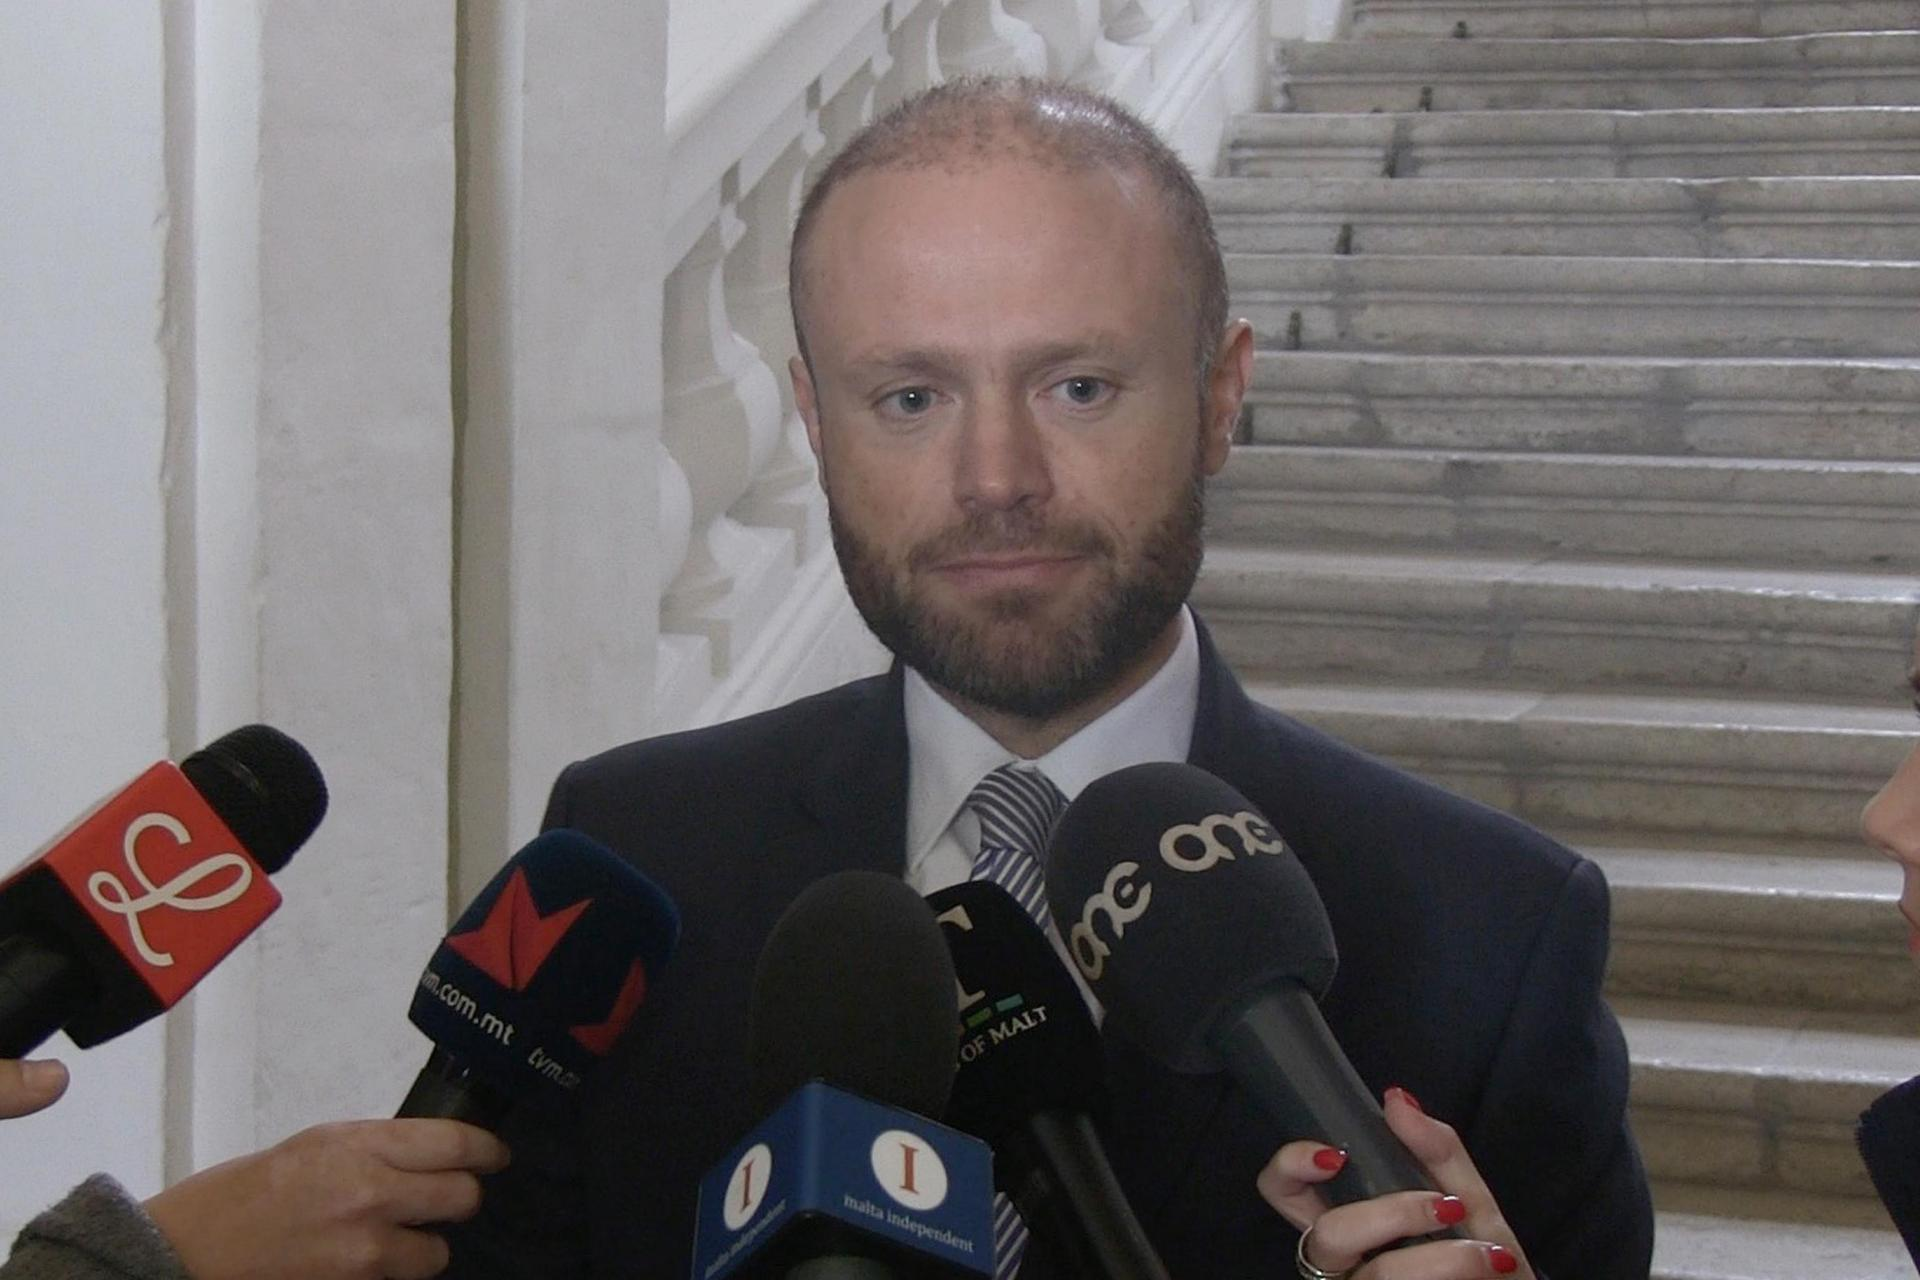 Prime Minister Joseph Muscat says that he will be taking political responsibility for the pardon.